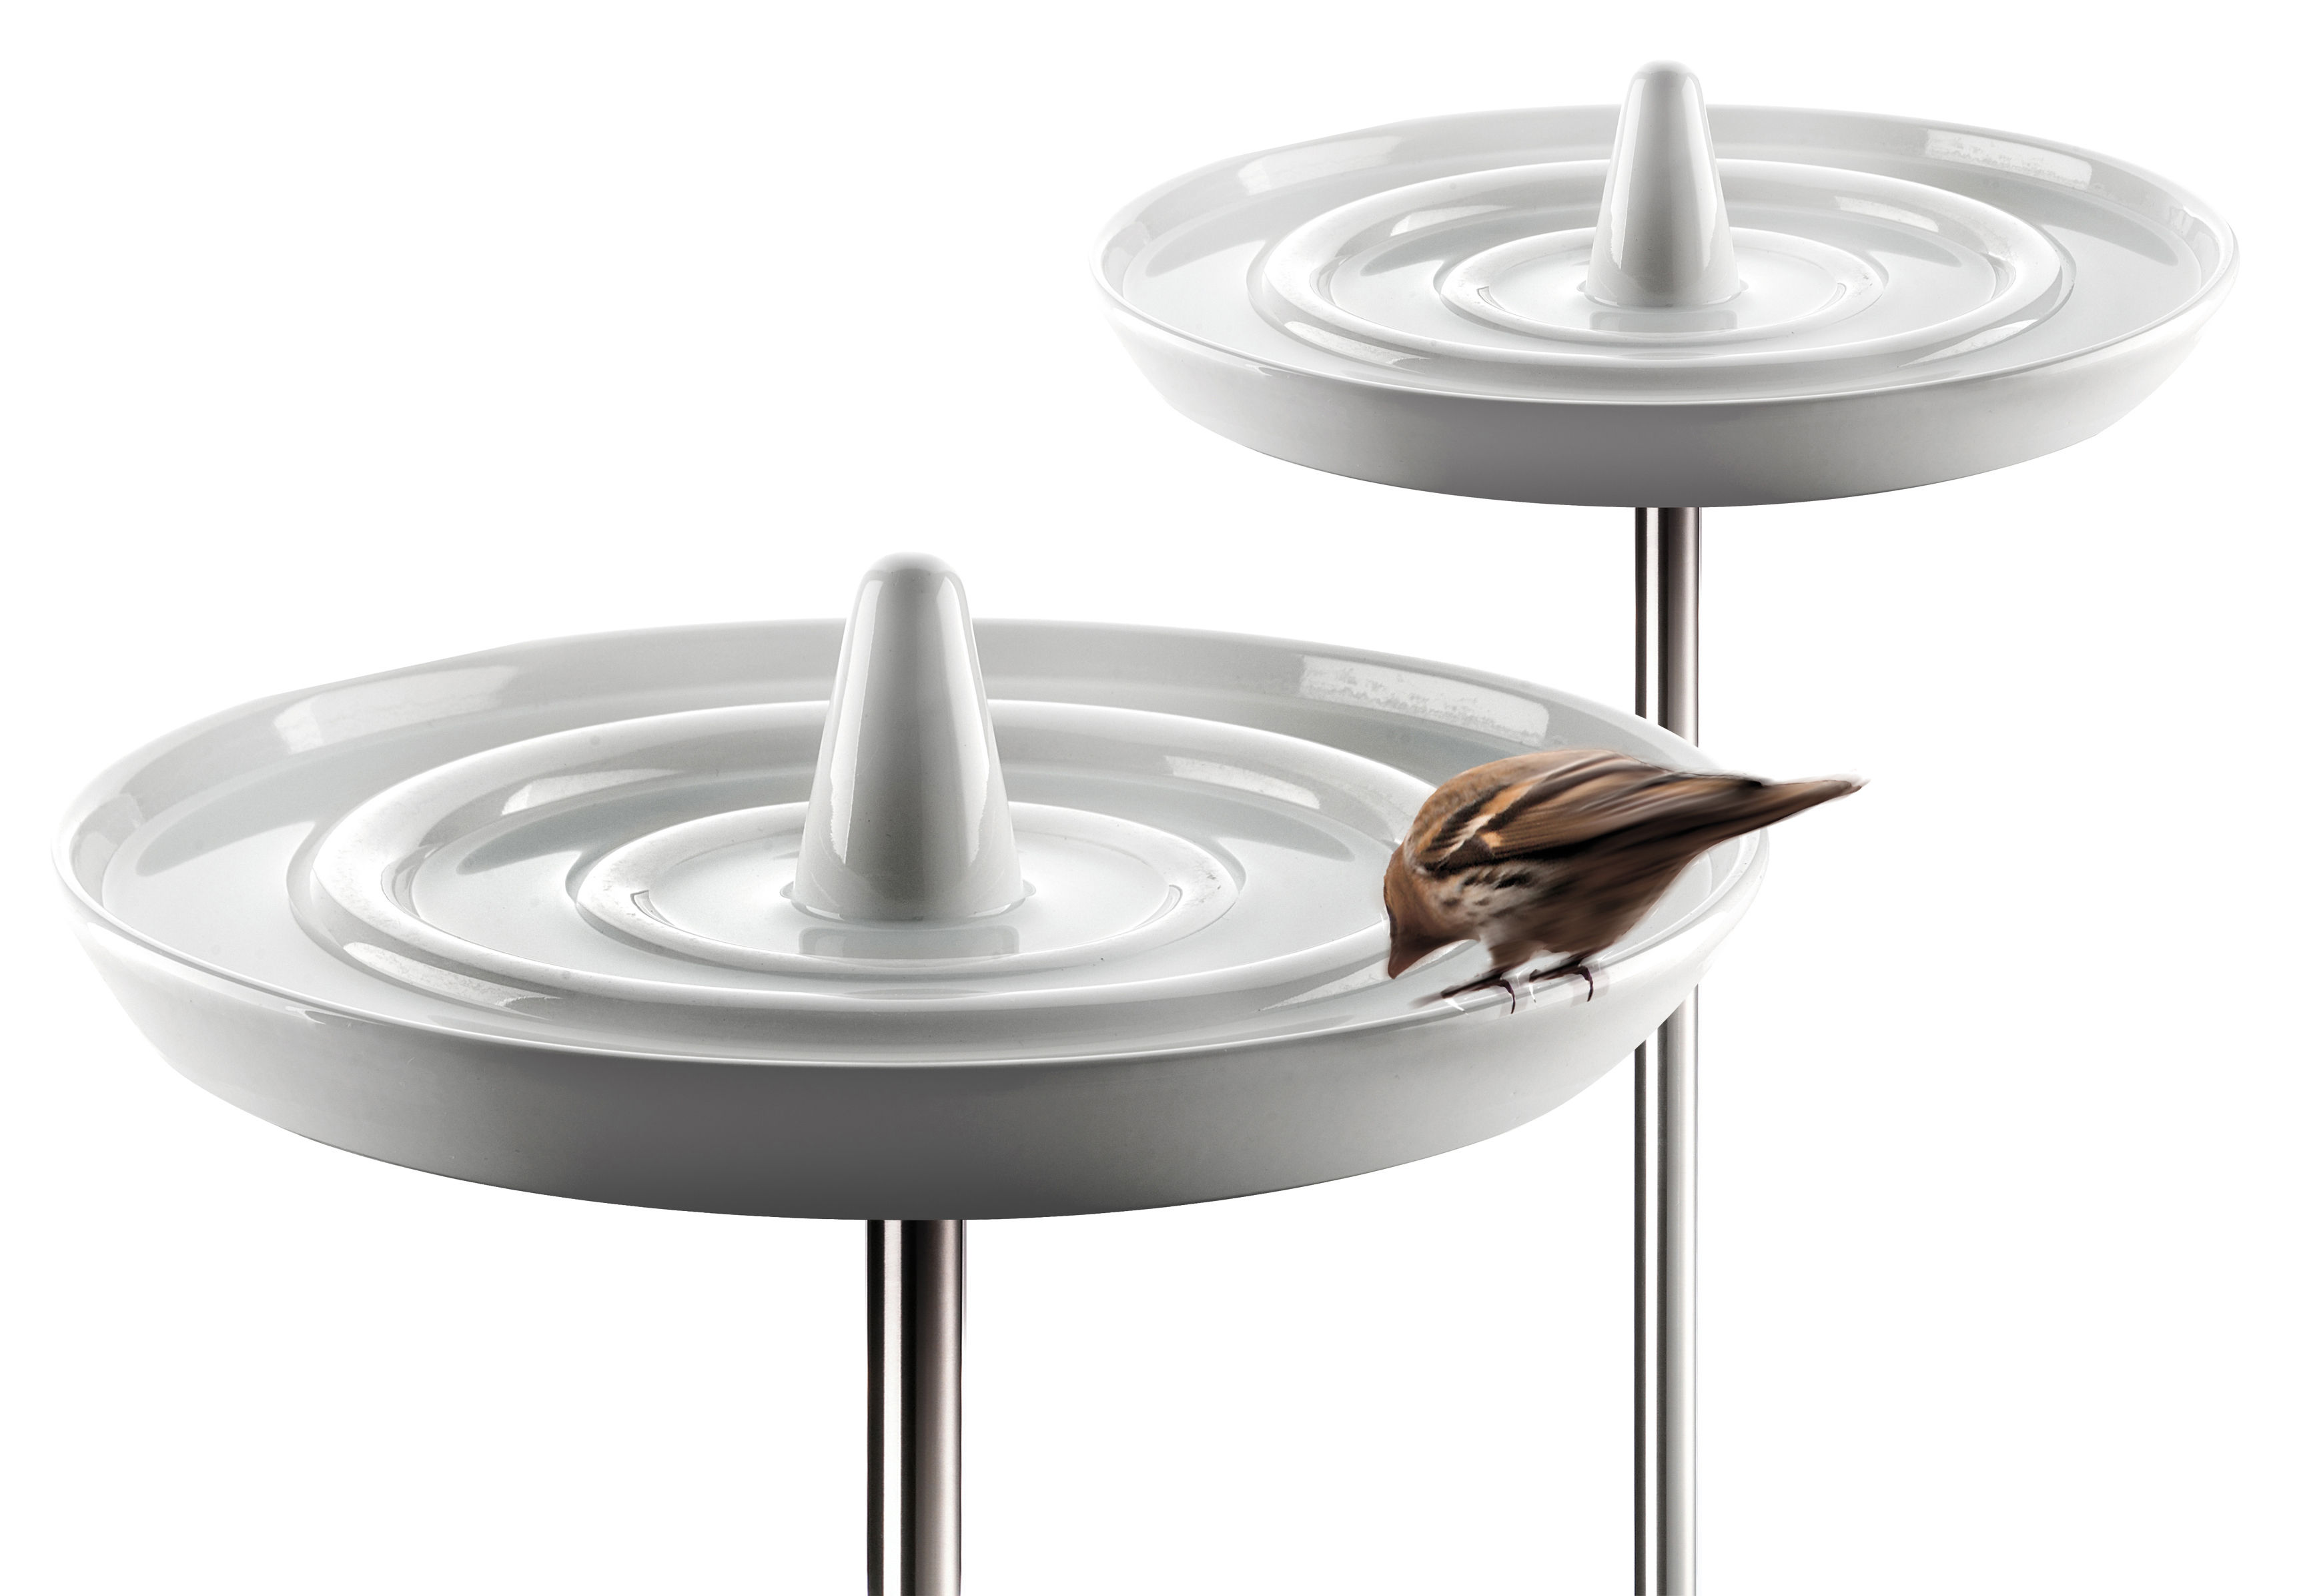 Outdoor ornaments accessories birdbath by eva solo white stainless steel